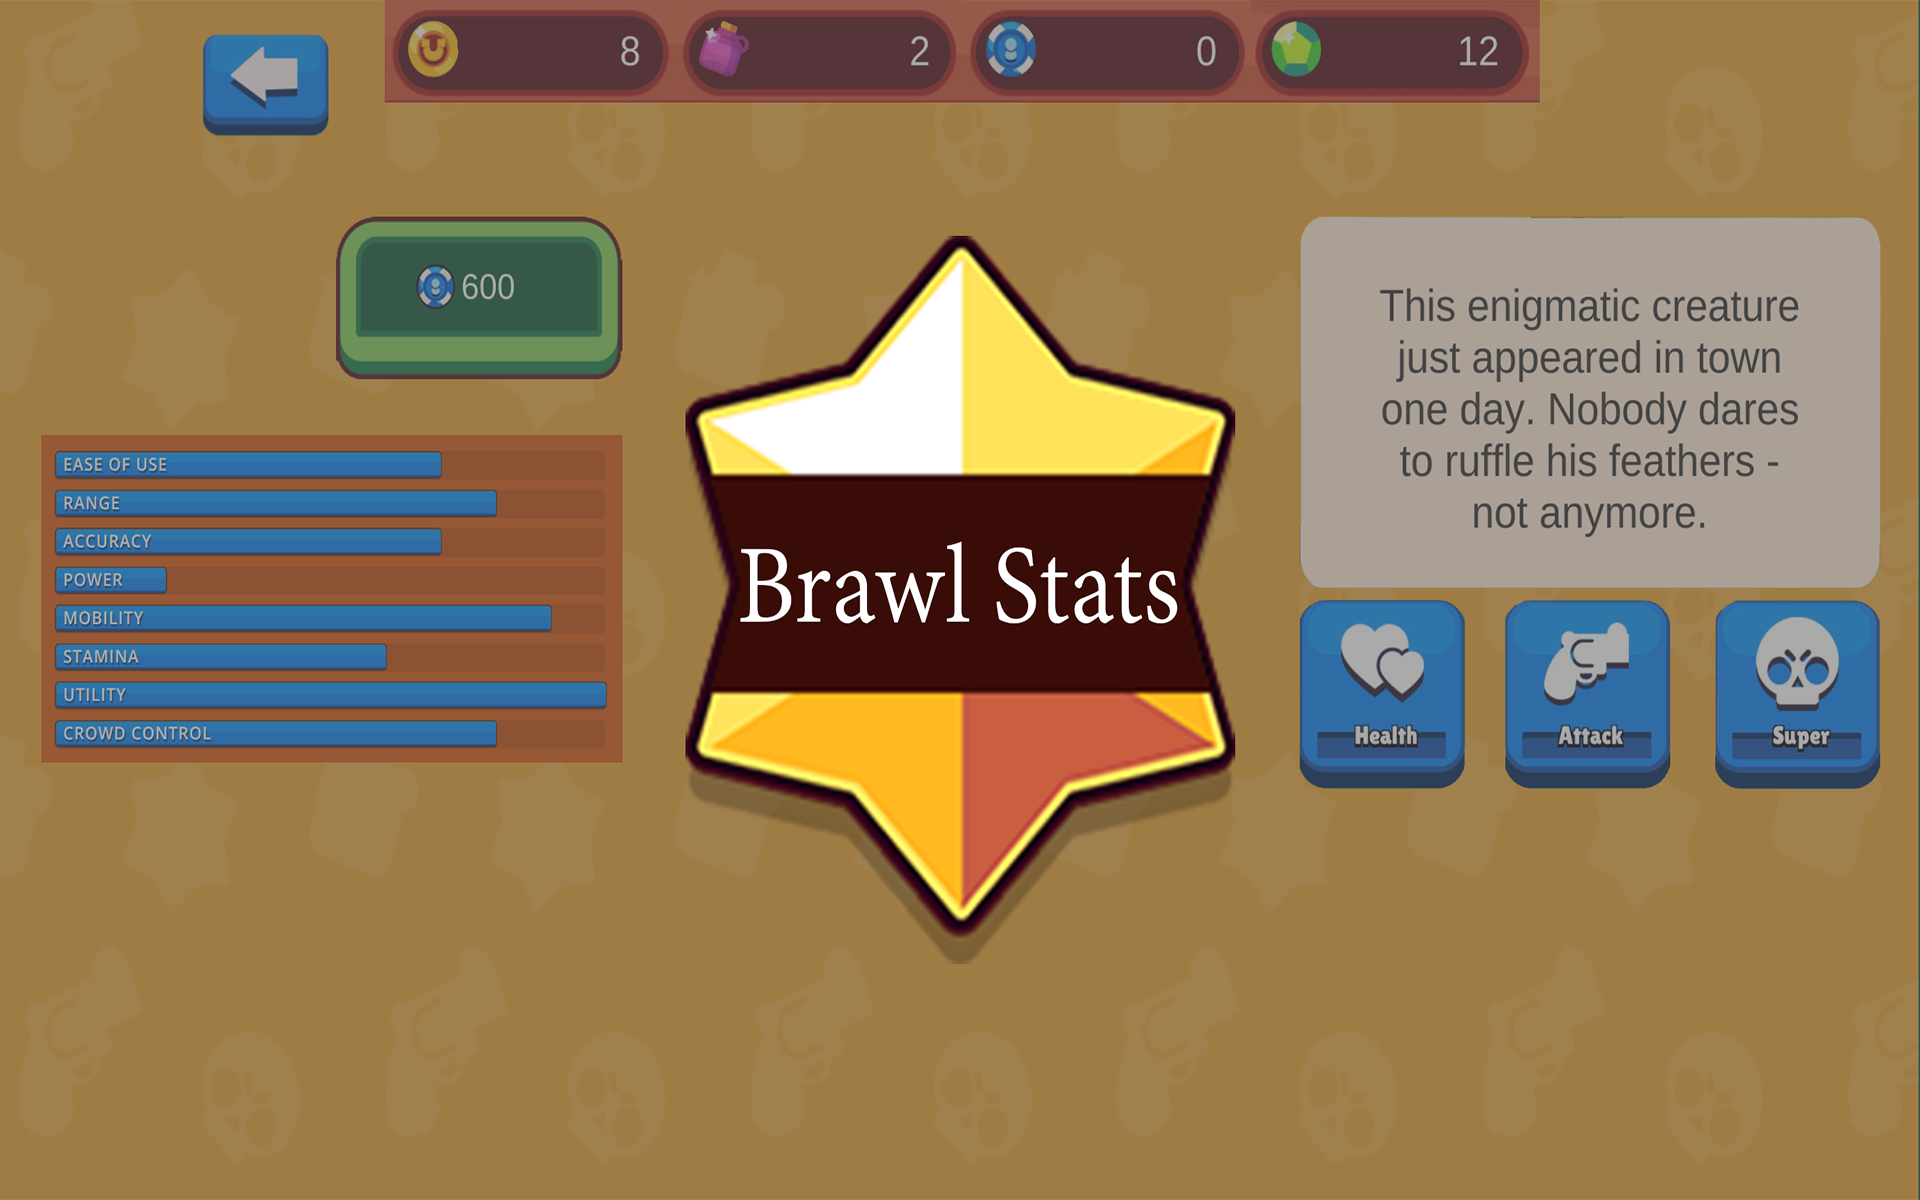 Amazon.com: Brawl Box Chest Simulator for Brawl Stars: Appstore for Android